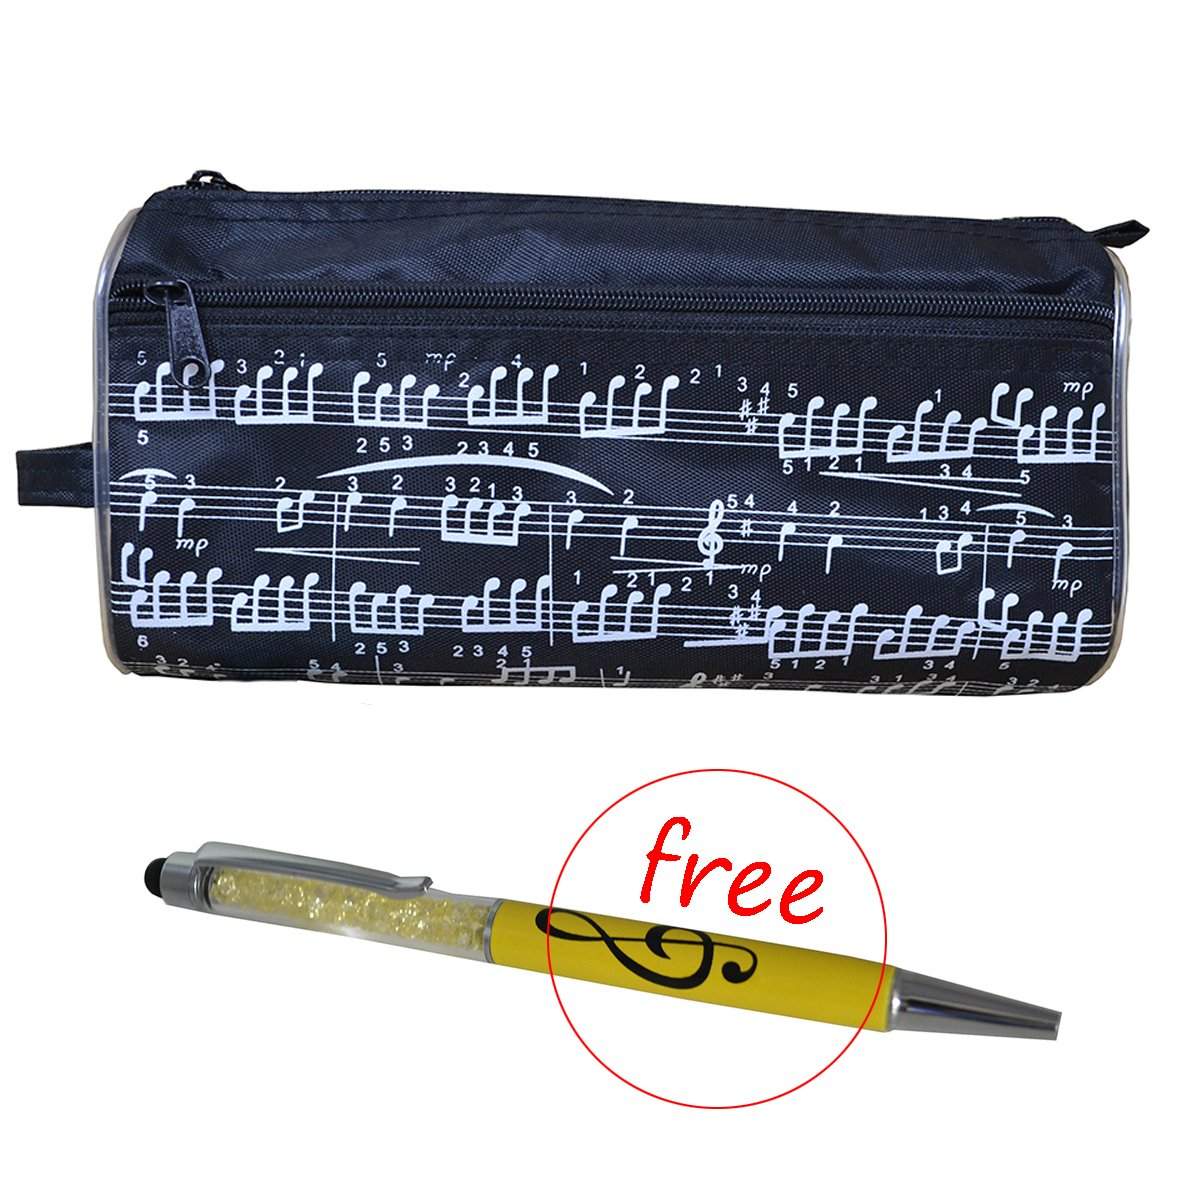 Pencil Bag Music Notes Pen Case Waterproof Oxford Cloth Portable Stationery Pouch Bag with Free Crystal Capacitive Ballpoint Gift (Black)